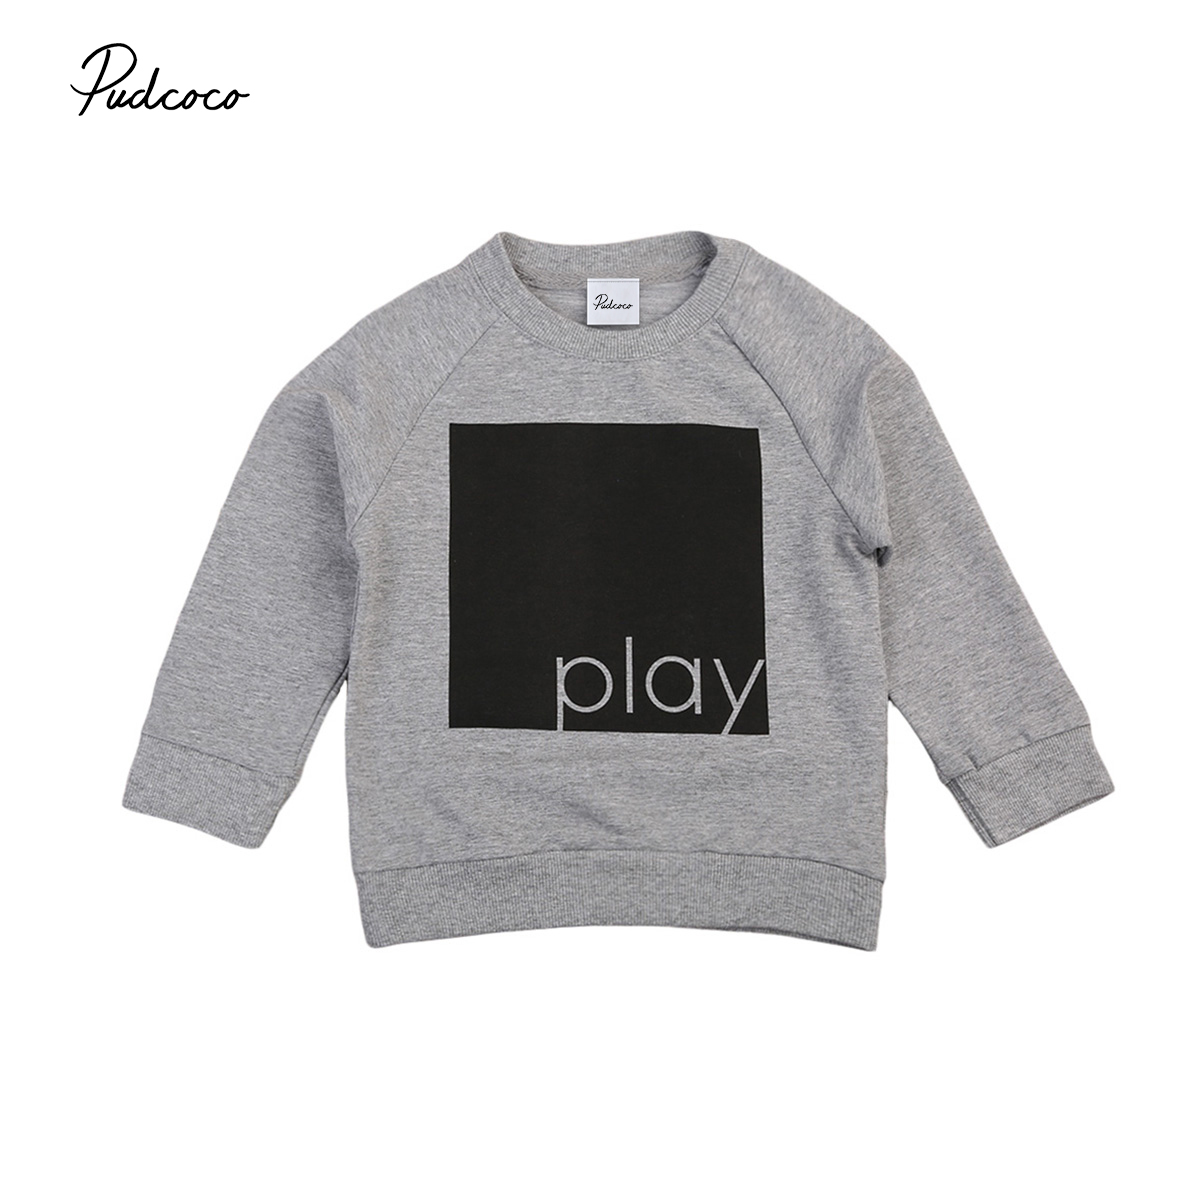 New Autumn Winter Kids Baby Boy Girl Clothes Long Sleeve Sweatshirt Jumper Warm T-shirt Tops Pullover Letter Print Tops 1-6Y